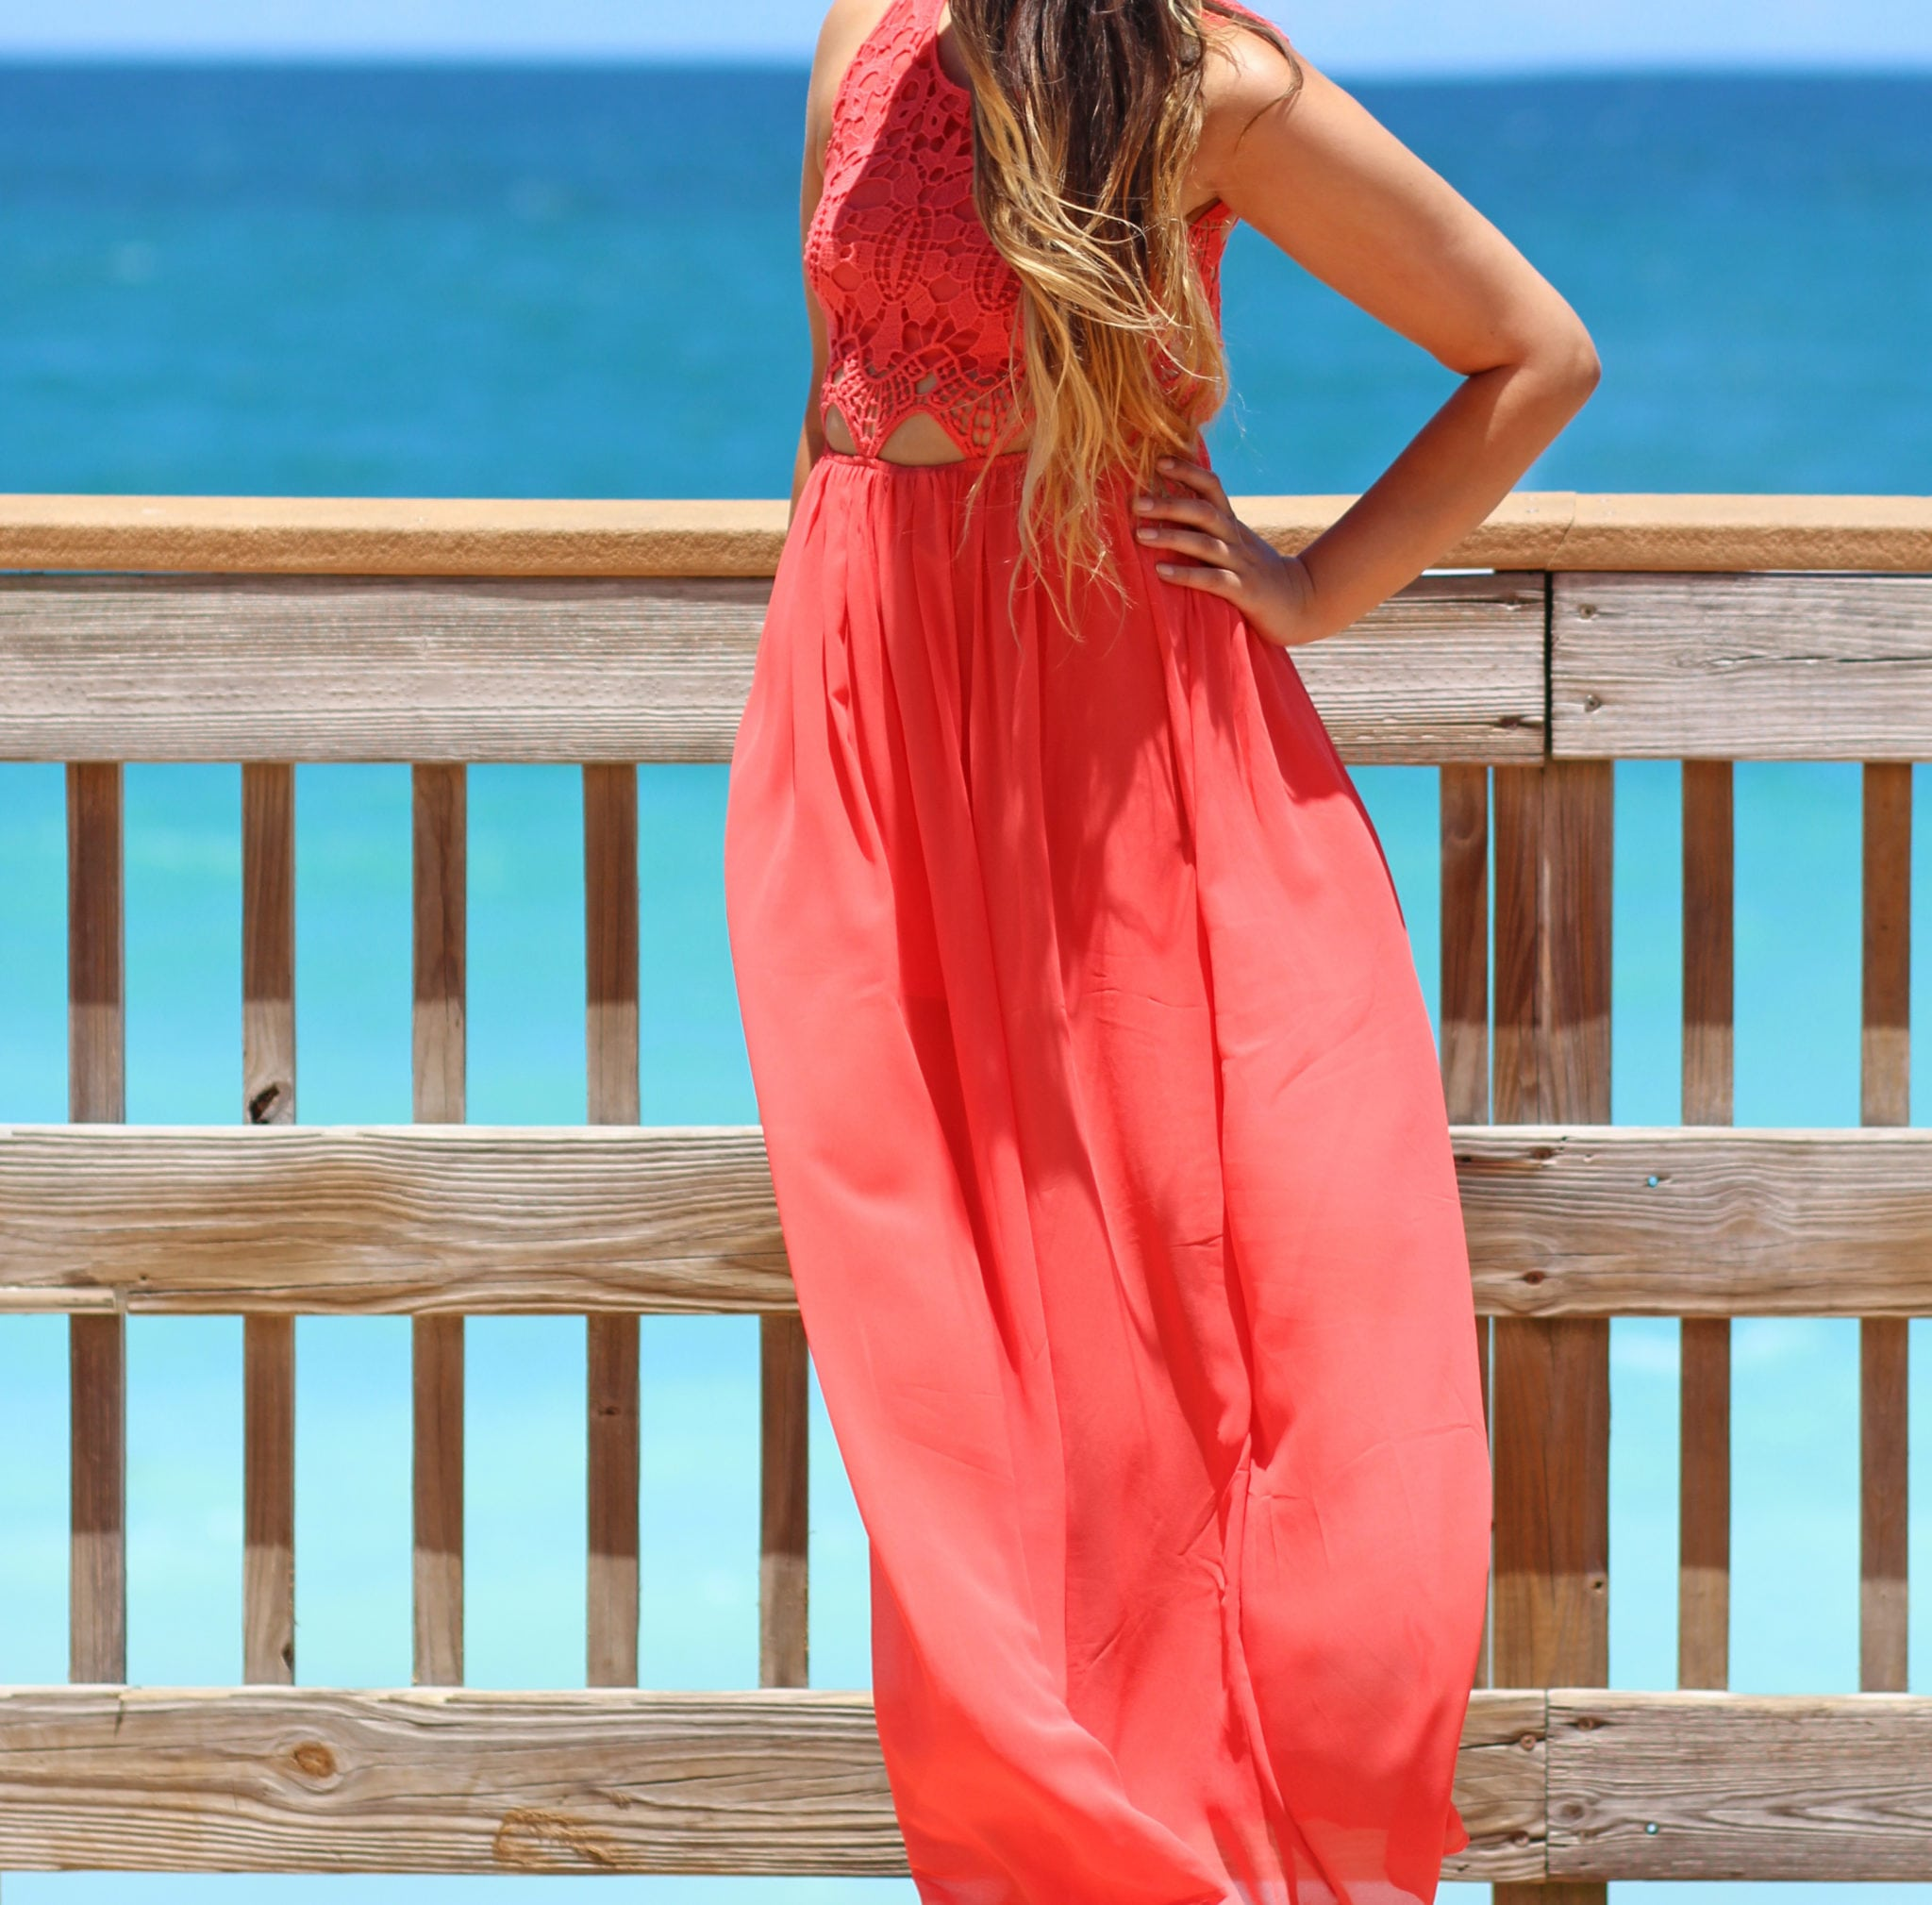 summer-maxi-dress | maxi dress style | summer dress | dresses for summer weather | beach vacation dress | beauty blogger Mash elle